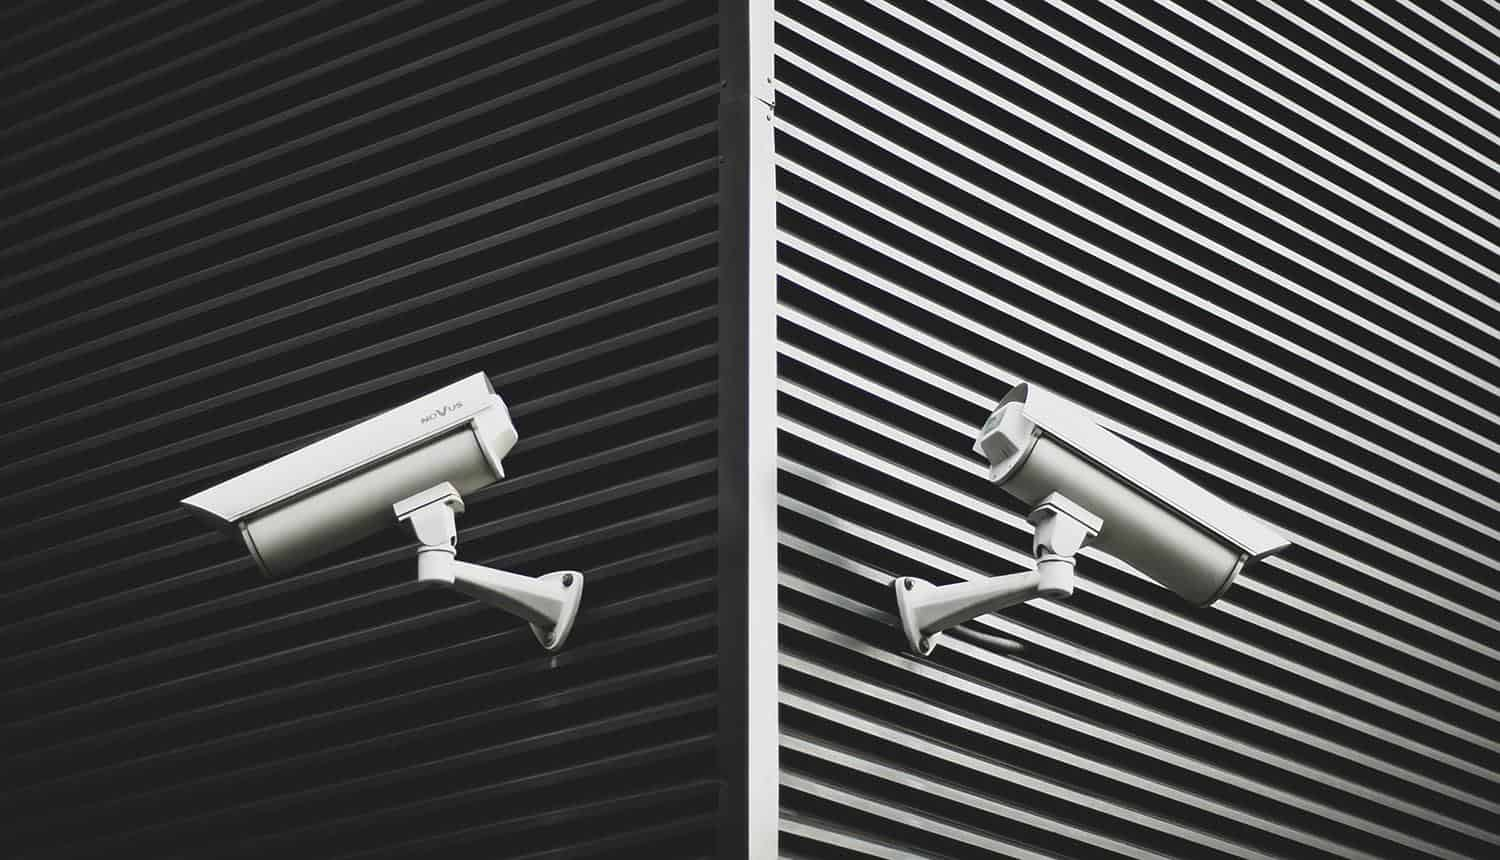 Surveillance cameras on a wall